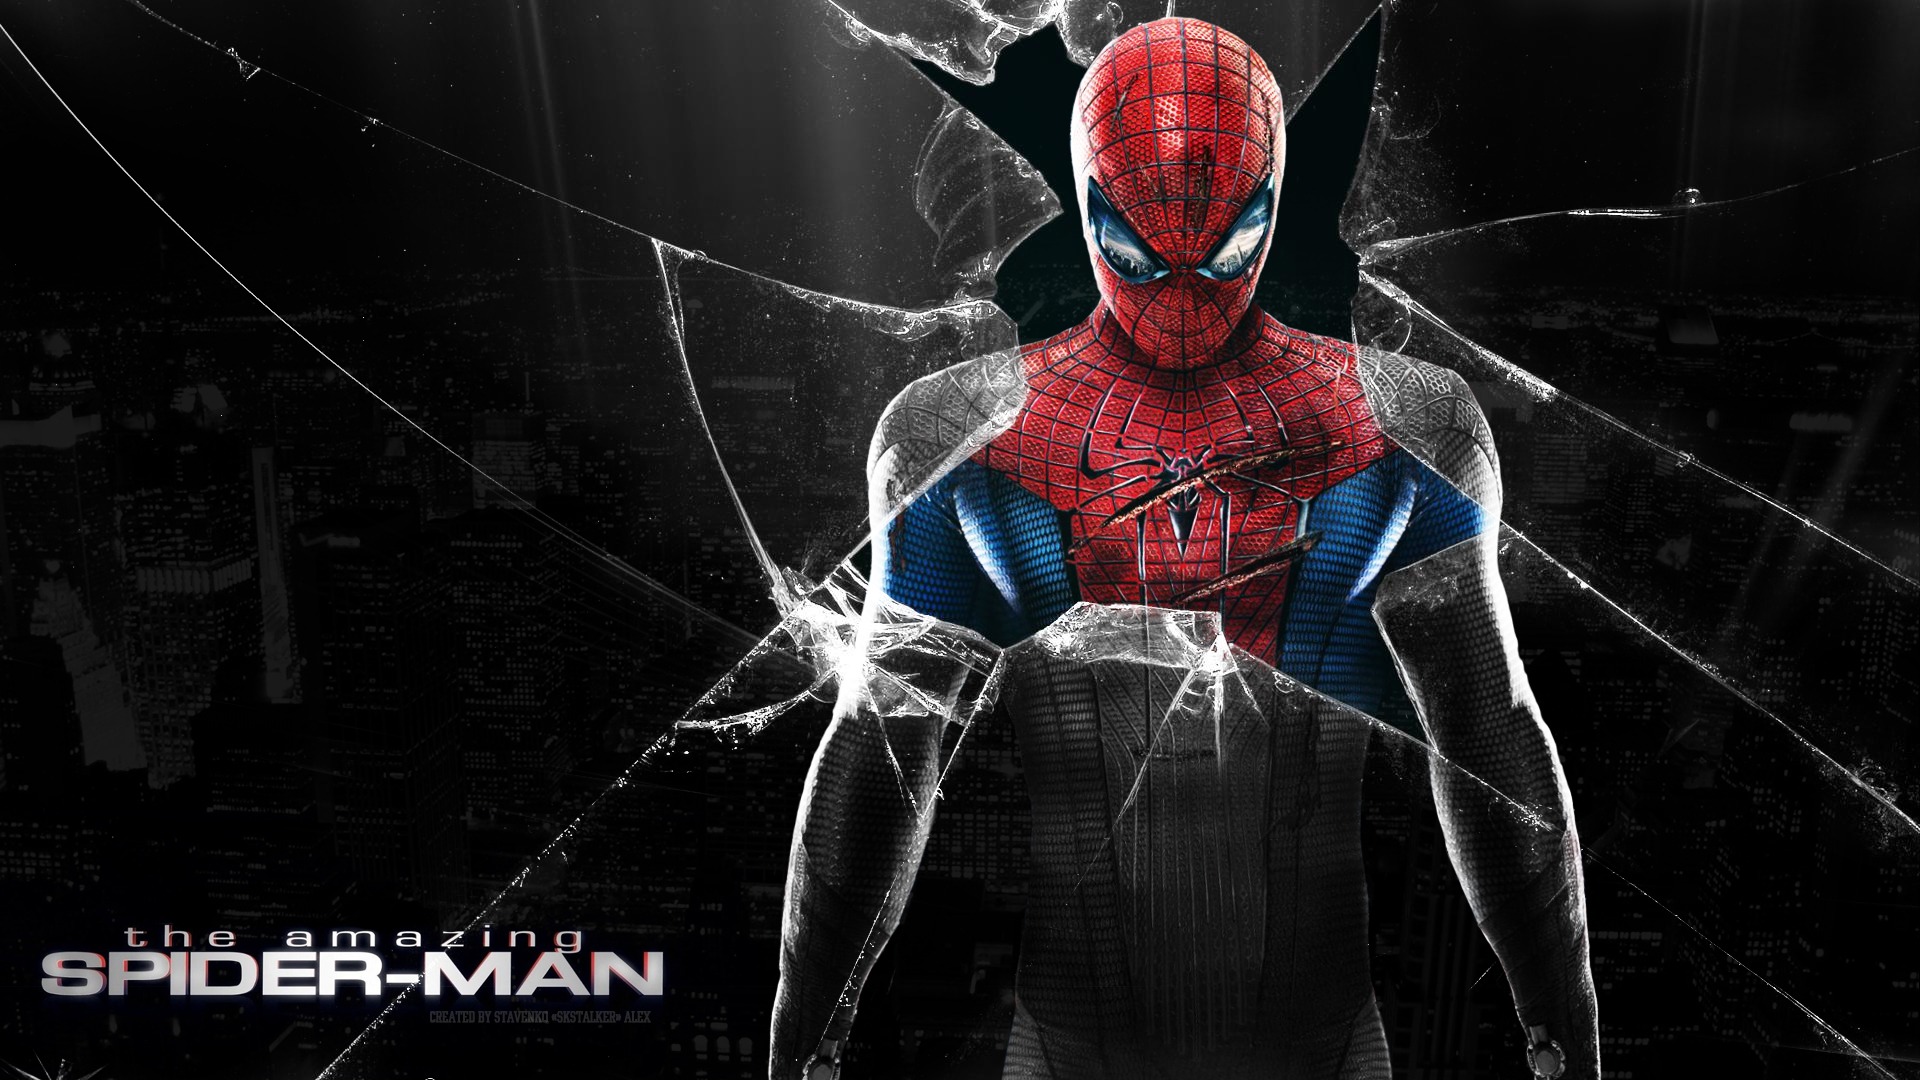 The Amazing Spider Man Wallpaper 1080p By Skstalker On Deviantart